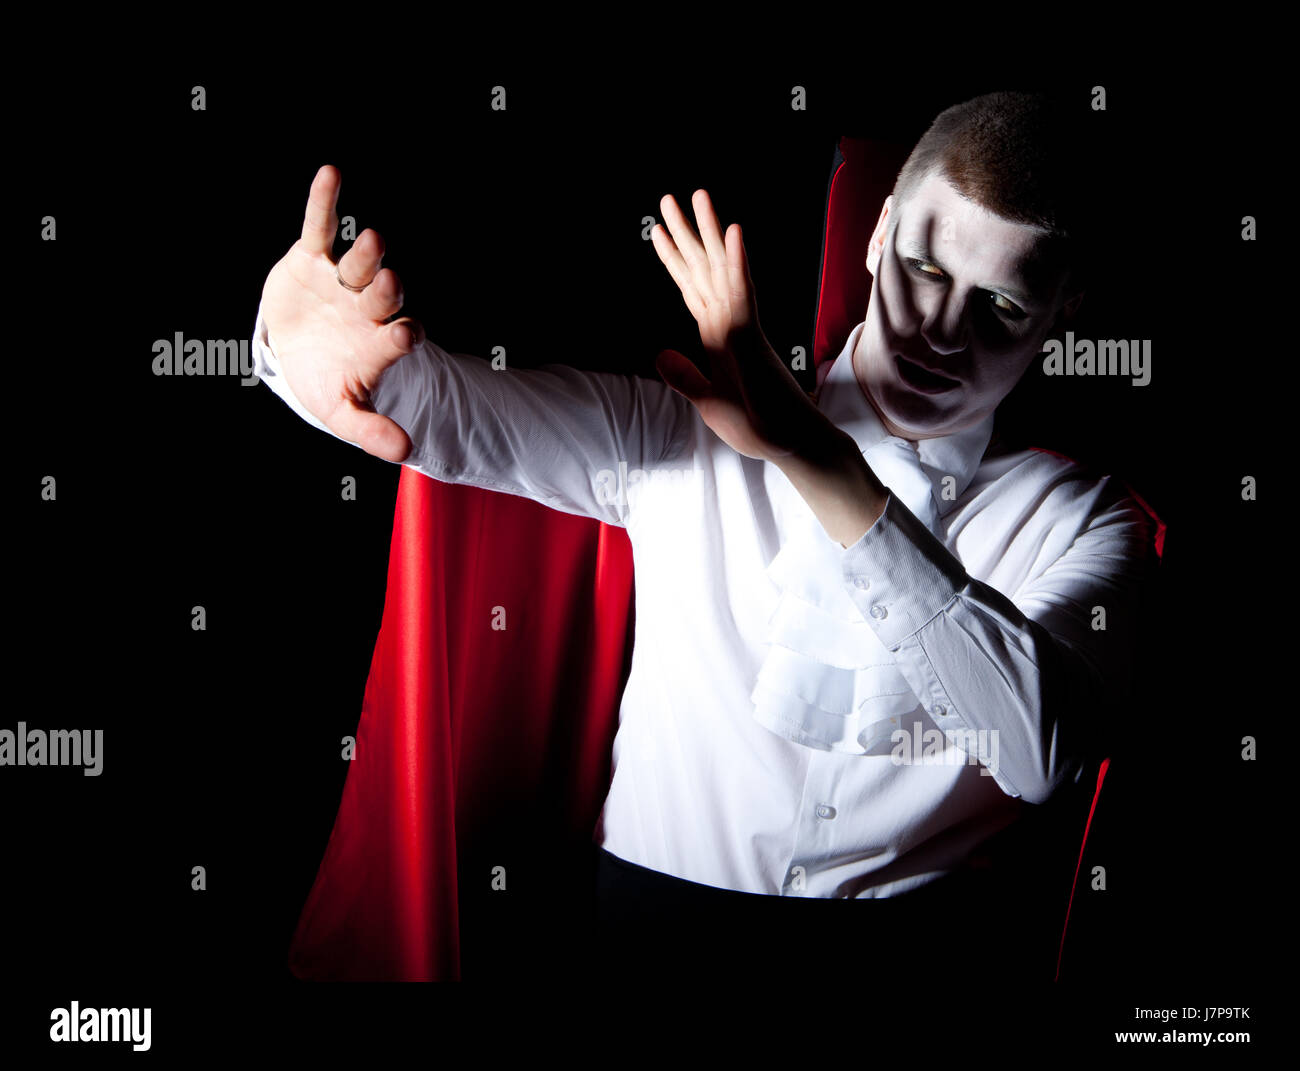 danger hand hands pain protect protection defense vampire shaddow shadow light Stock Photo